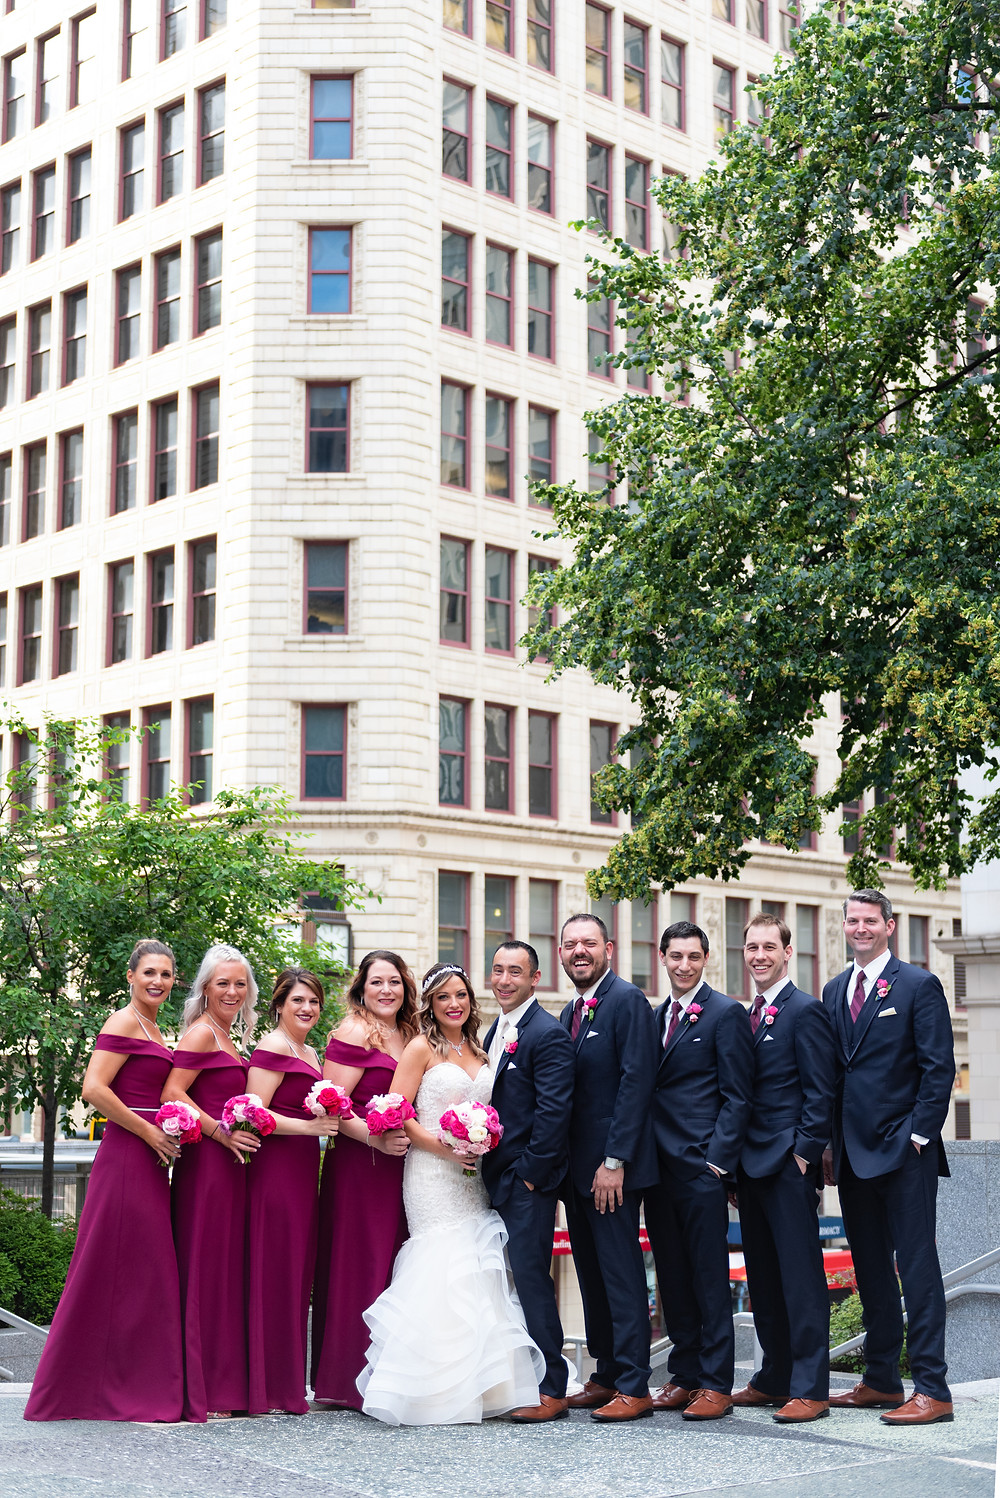 Bridal party portrait with the bridesmaids wearing burgundy dresses in Mellon Square